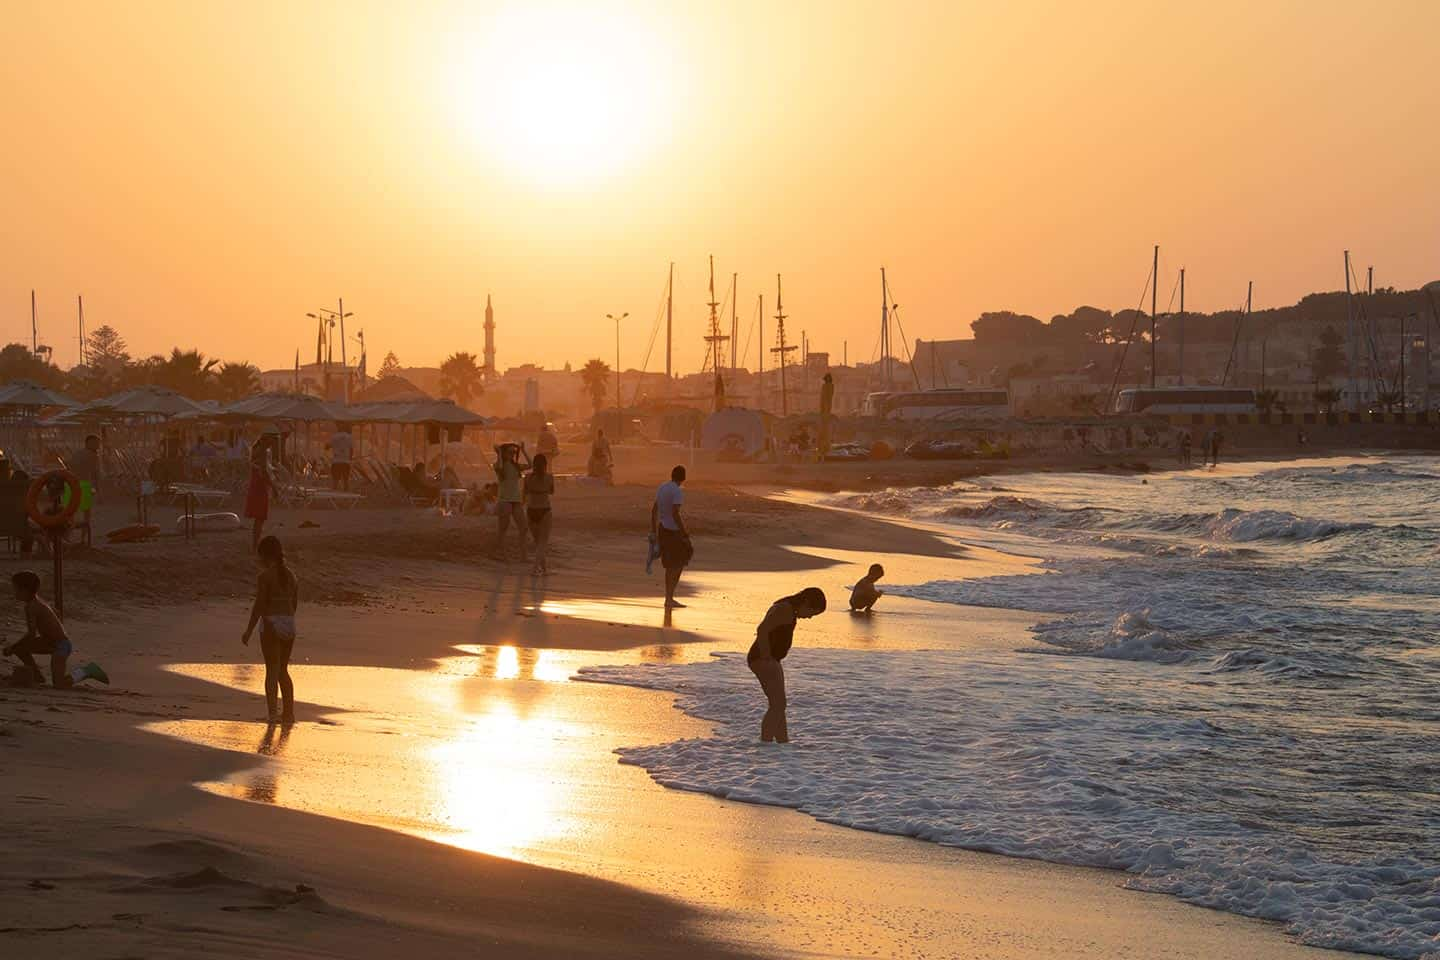 Image of Rethymno Crete Greece at sunset